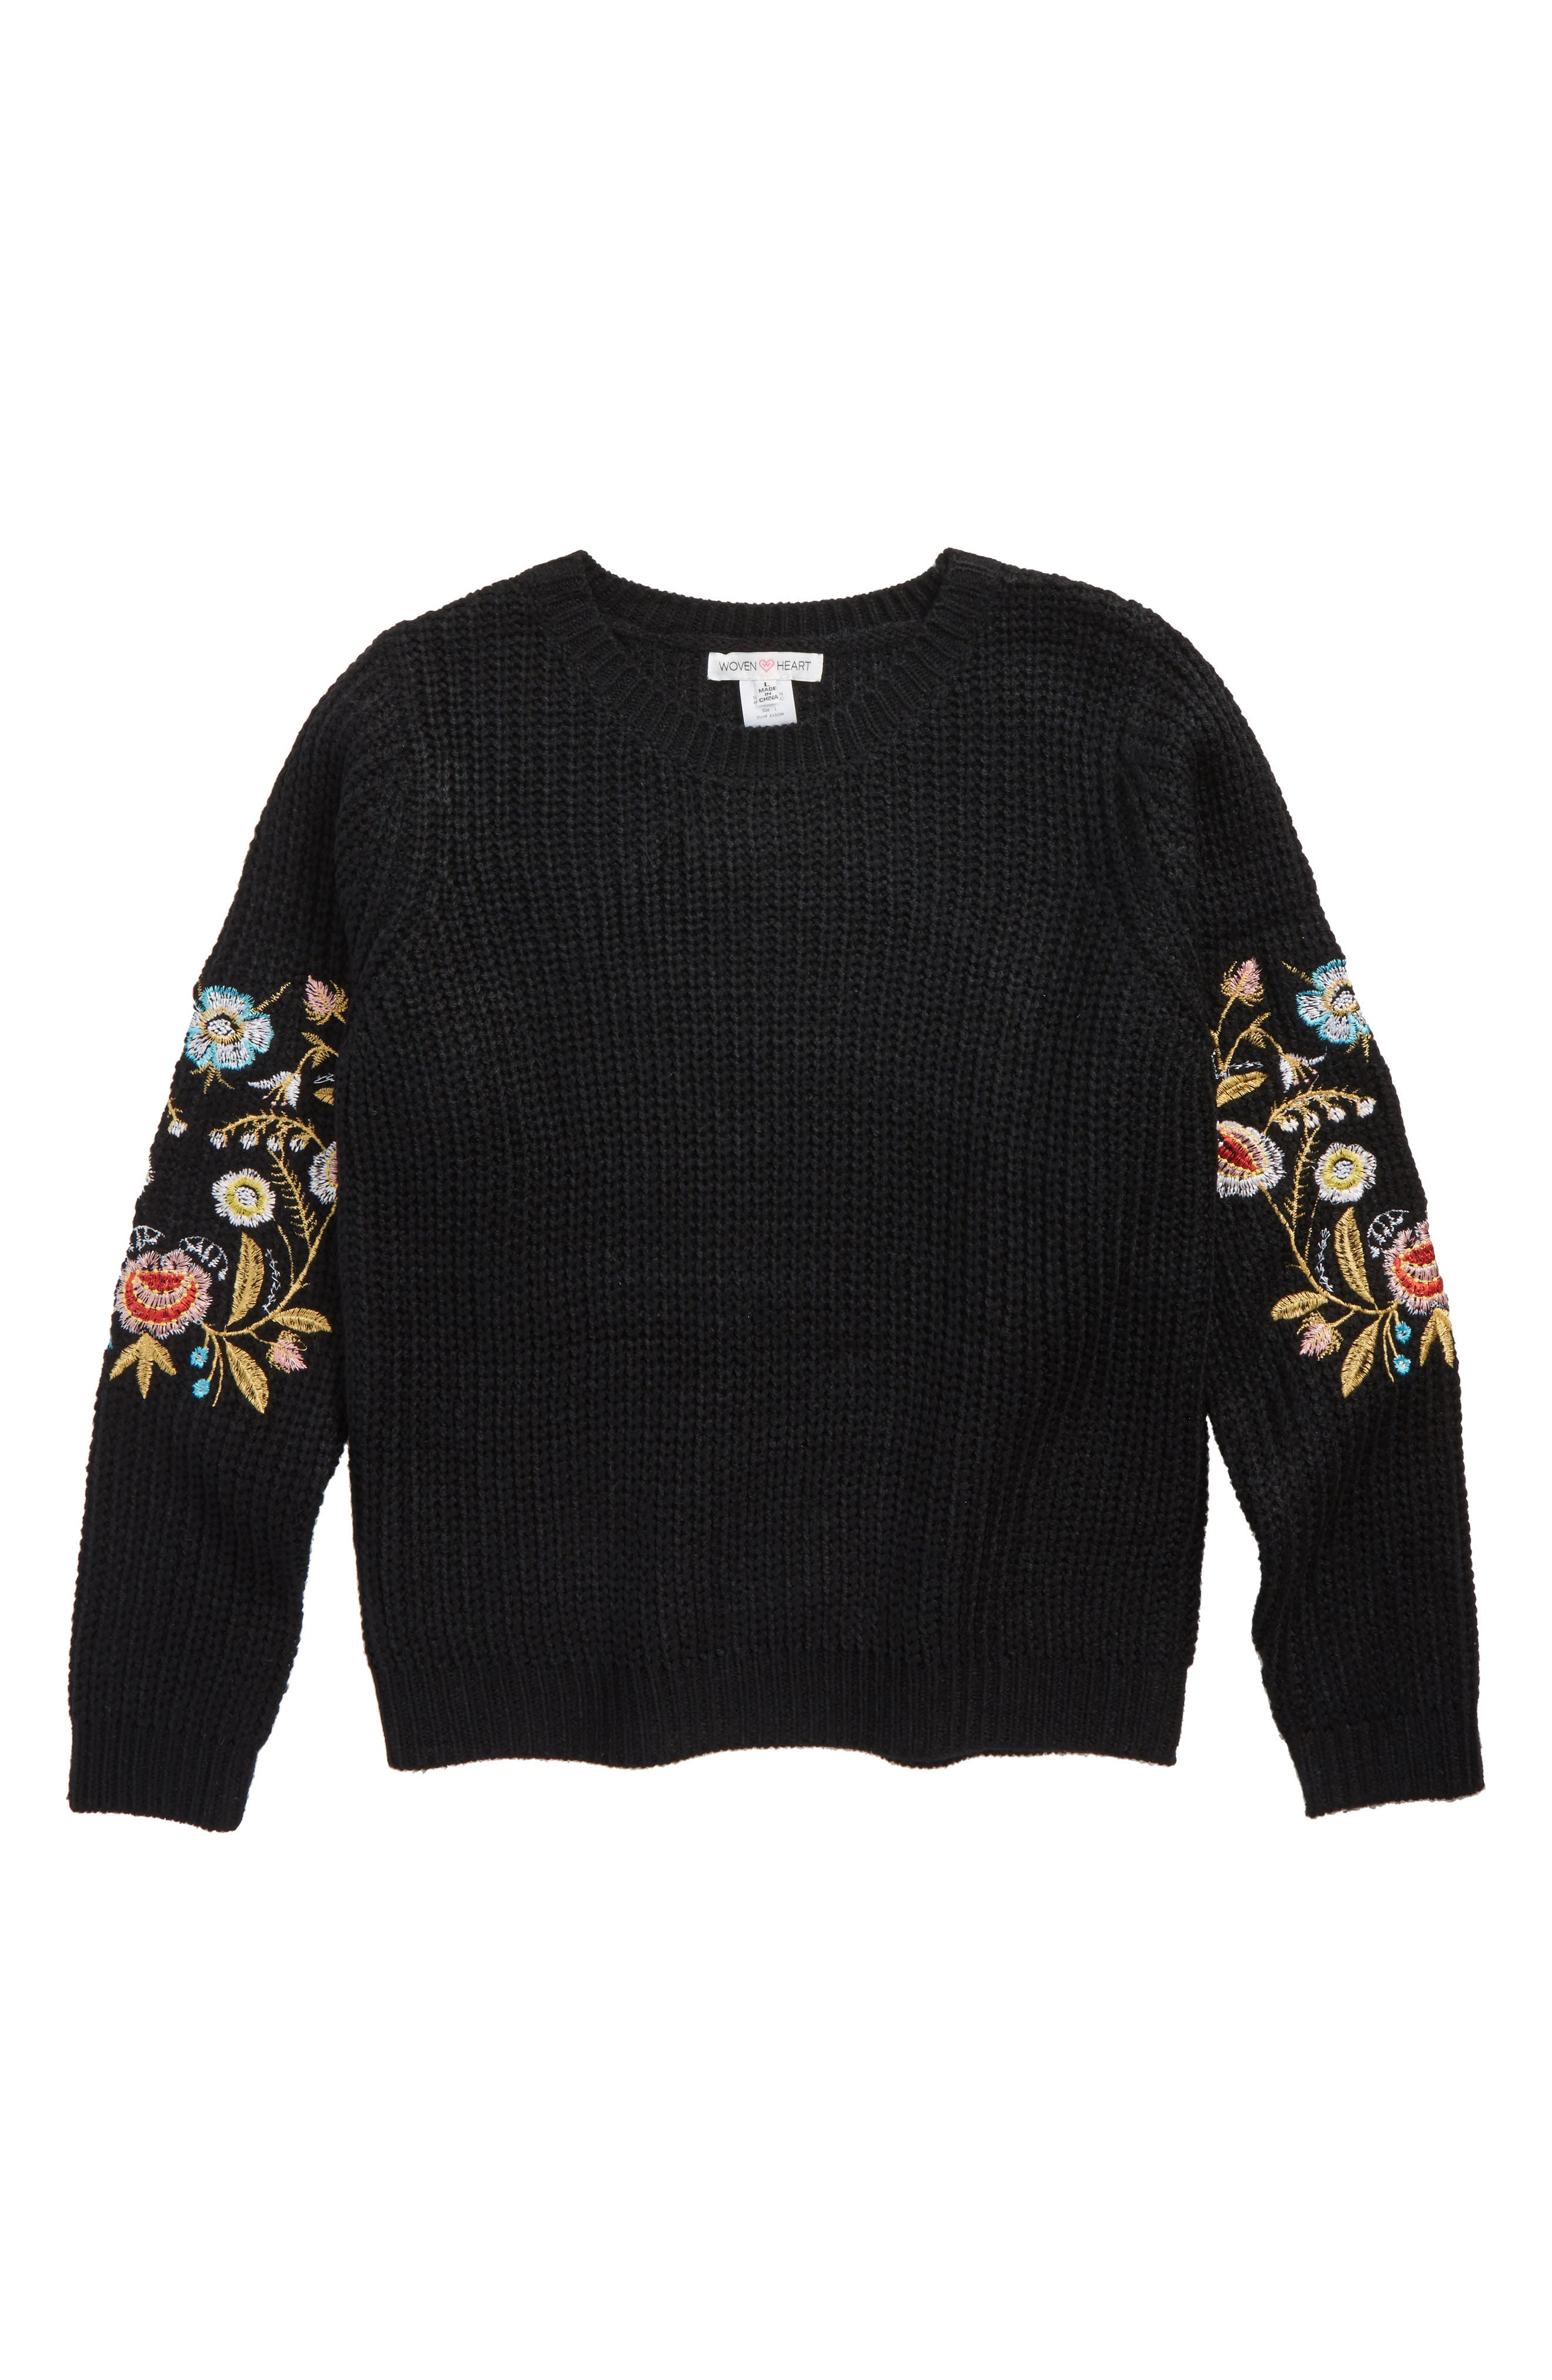 Main Image - Woven Heart Embroidered Sleeve Sweater (Big Girls)